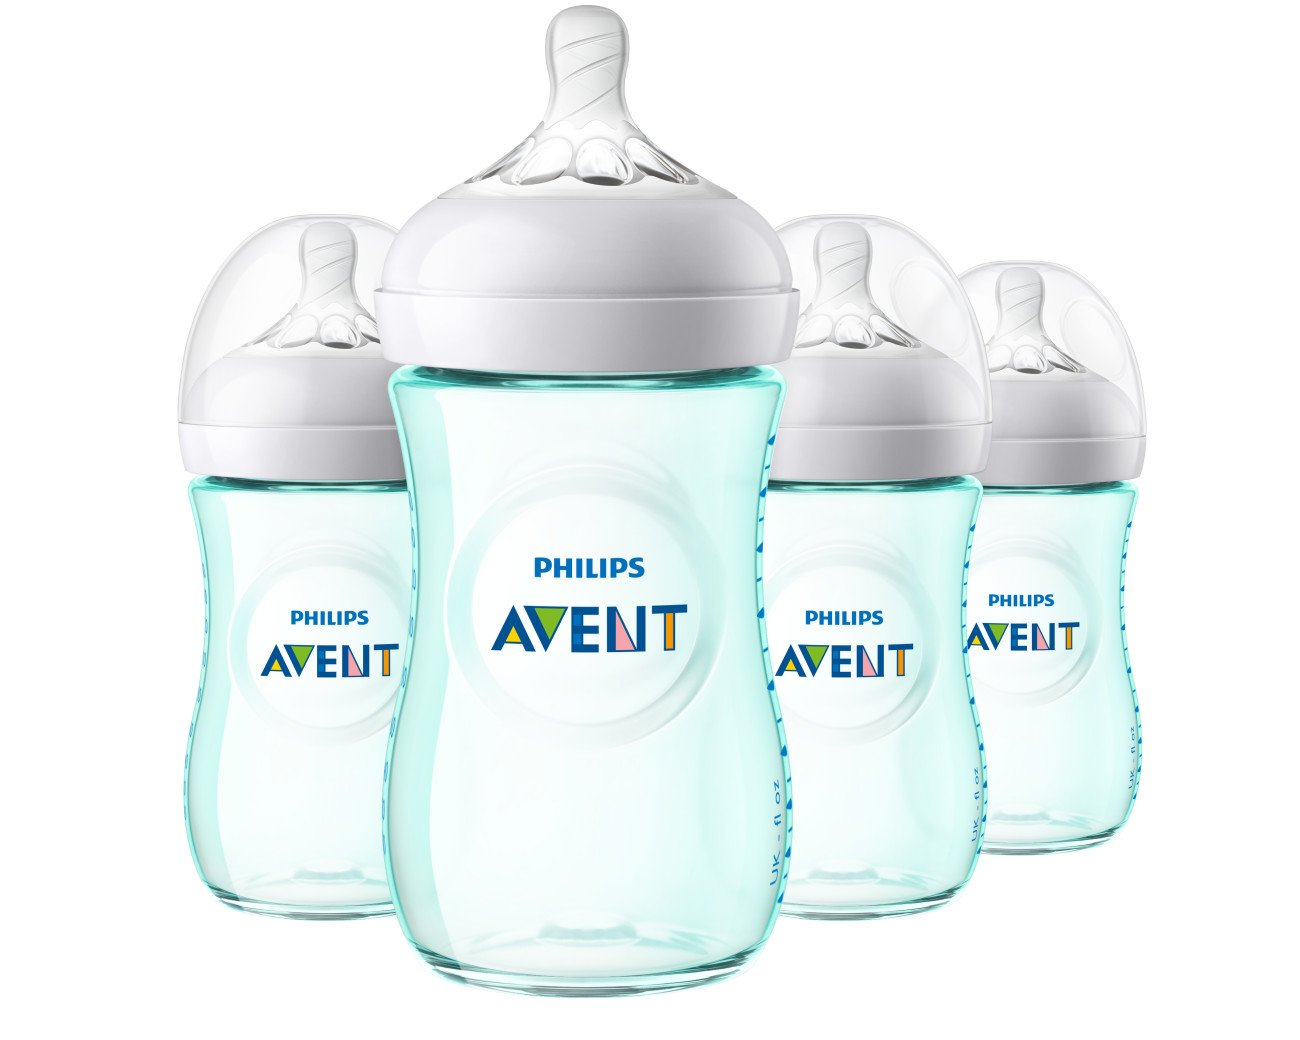 Philips Avent Natural Baby Bottle, Teal, 9oz, 4pk, SCF013/44 075020068385